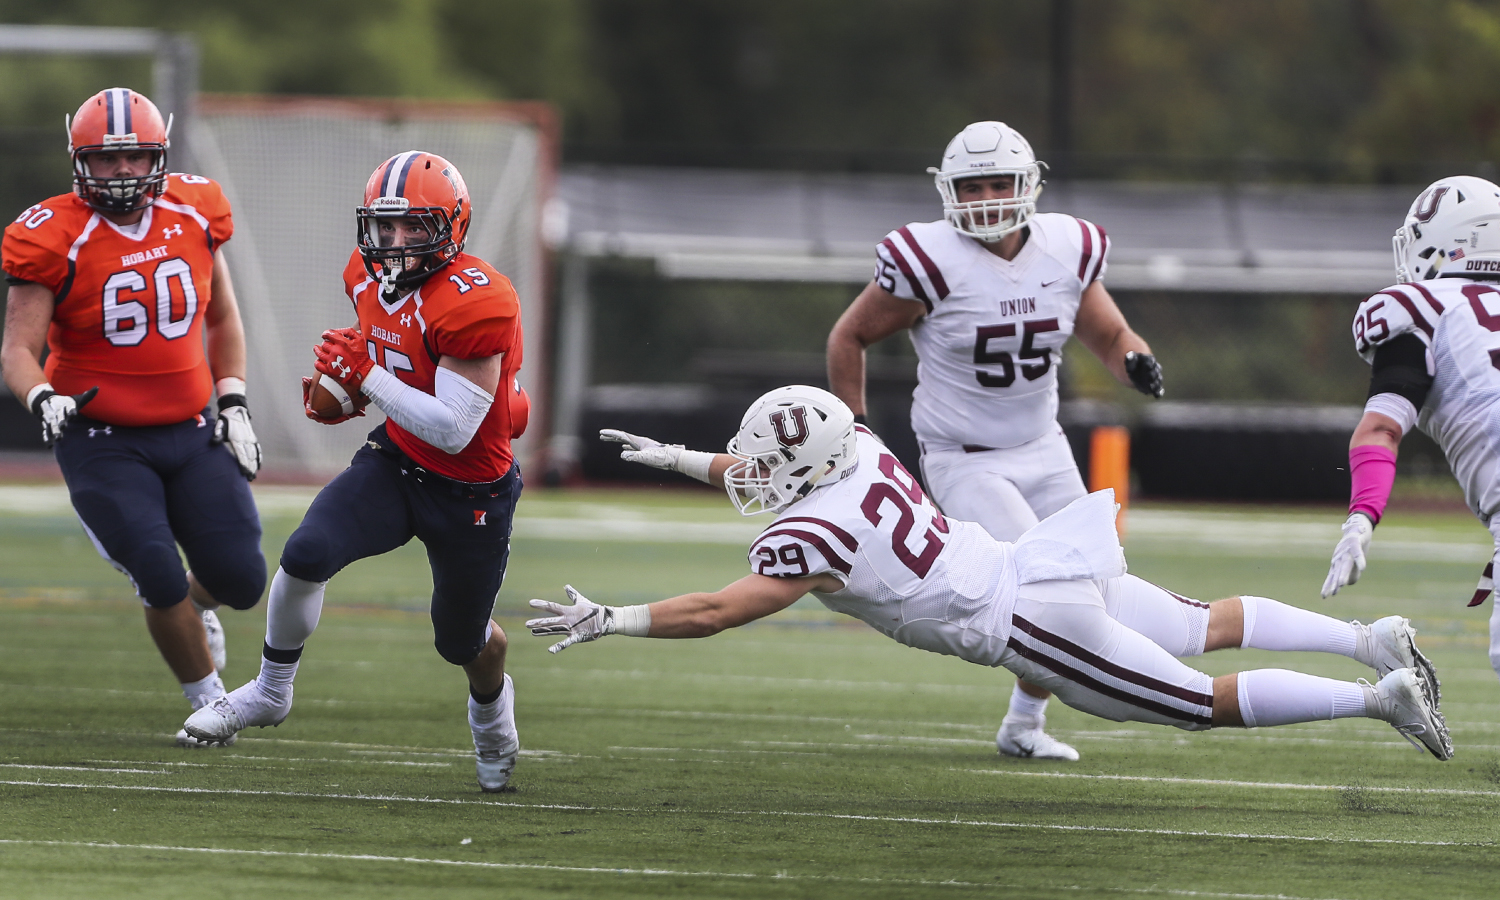 Jake Catalioto '20 catches the ball during Hobart Football's 29-28 victory against Union College.